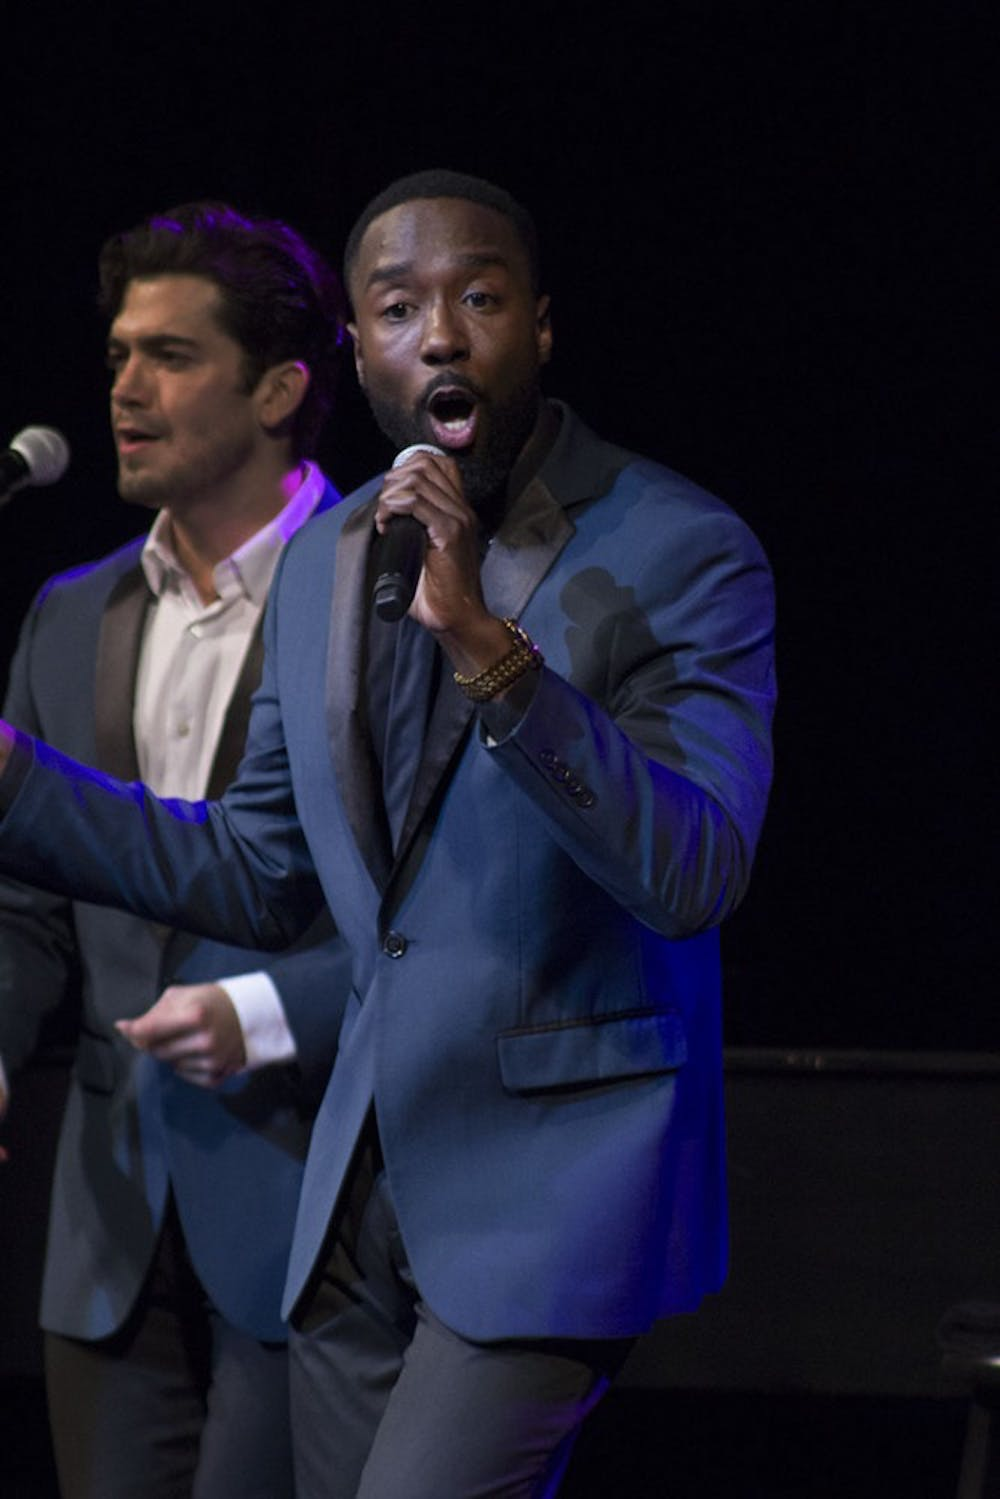 'The Doo Wop Project' bops into Luhrs